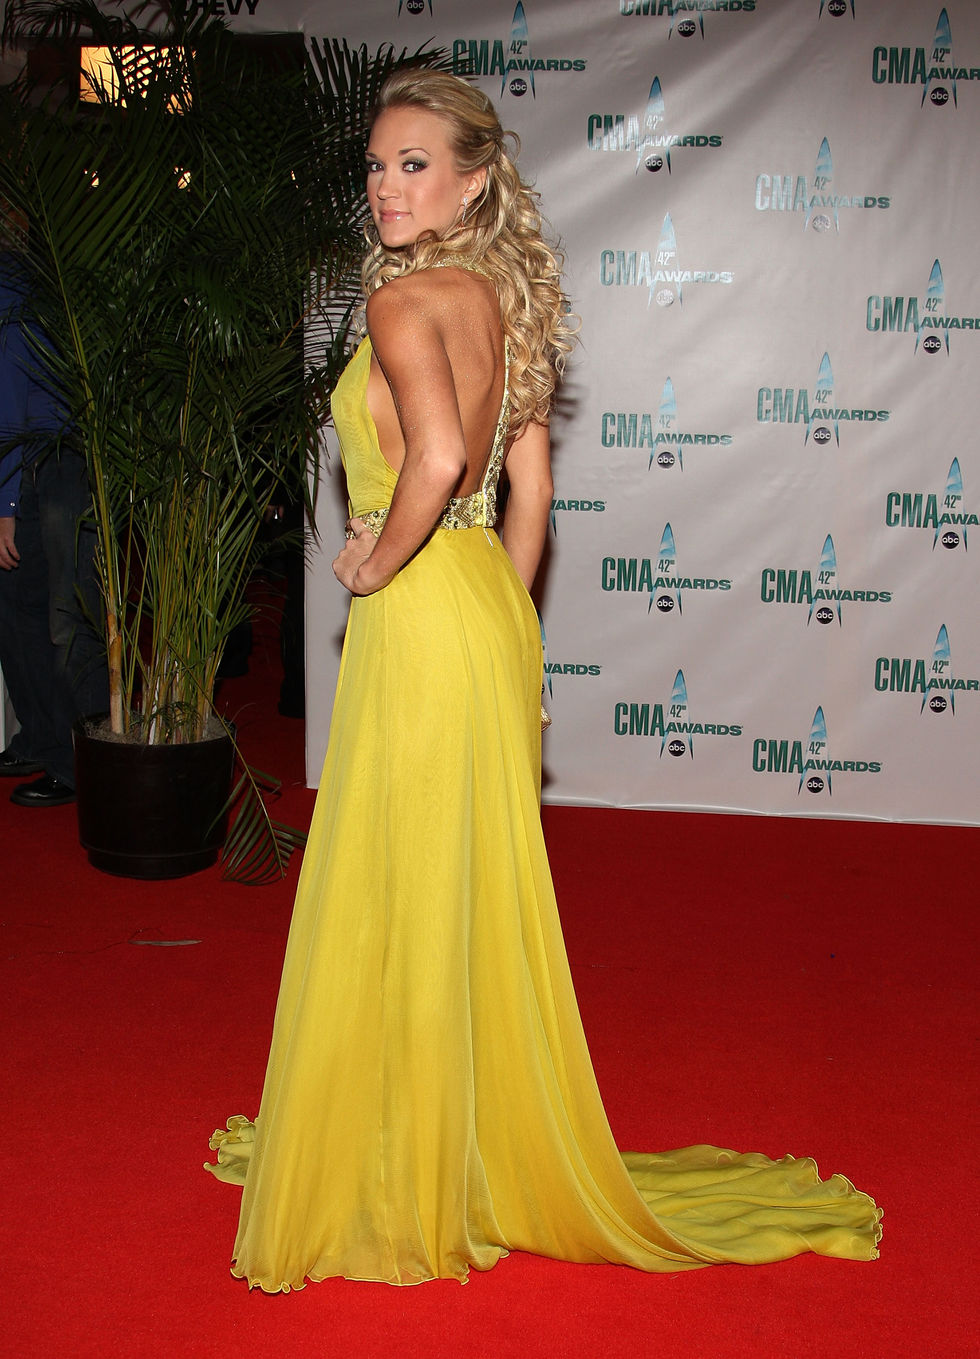 carrie-underwood-42nd-annual-cma-awards-in-nashville-01